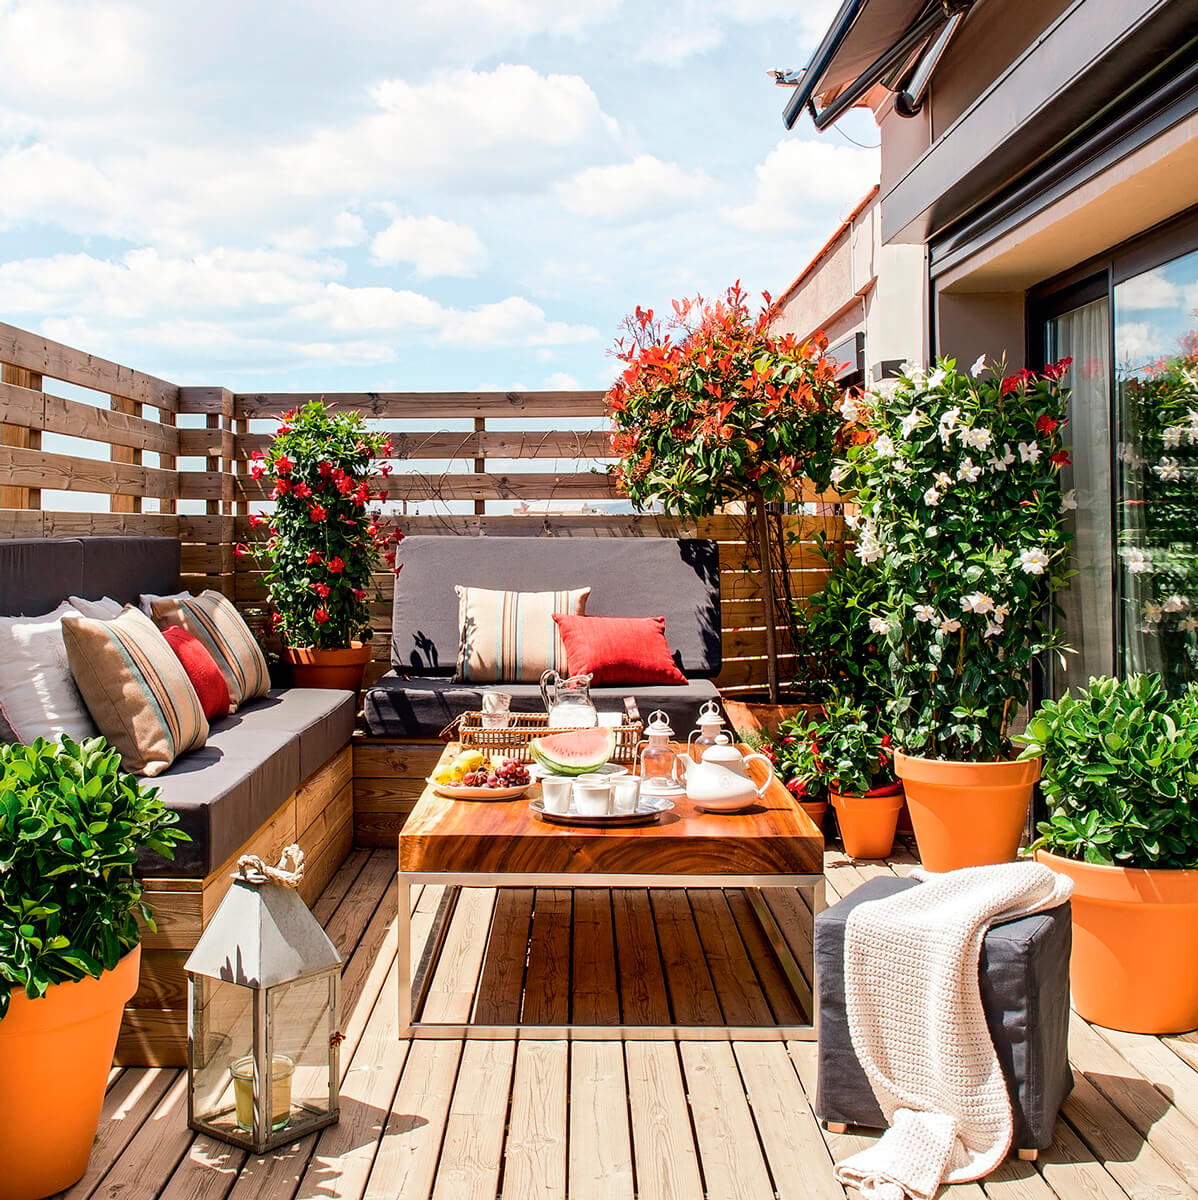 10 ideas para decorar terrazas y balcones handfie diy for Decoracion jardin terraza